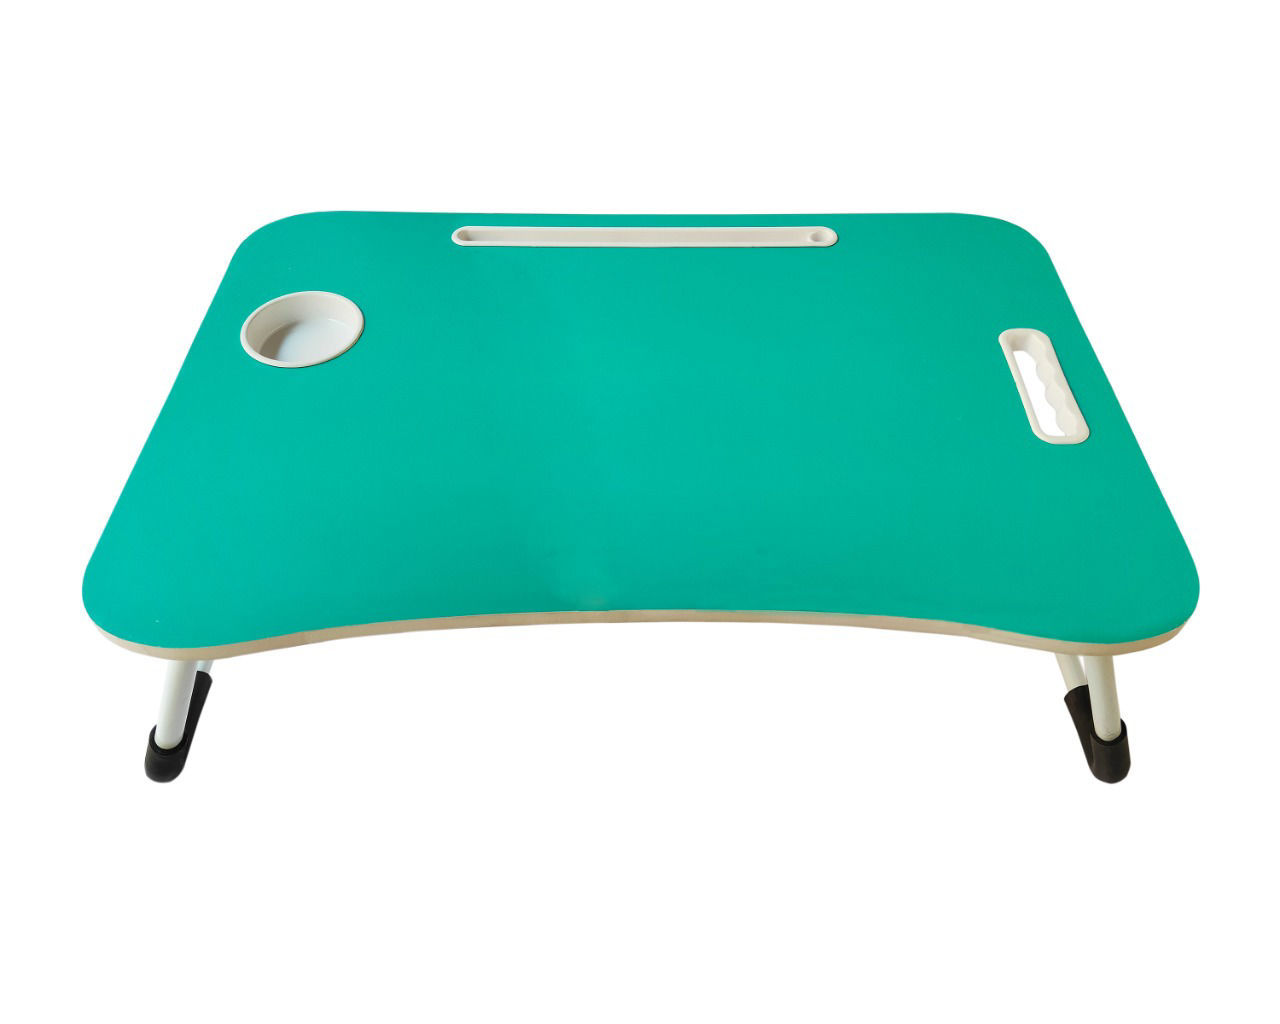 Kids Wooden Bed Table- Green